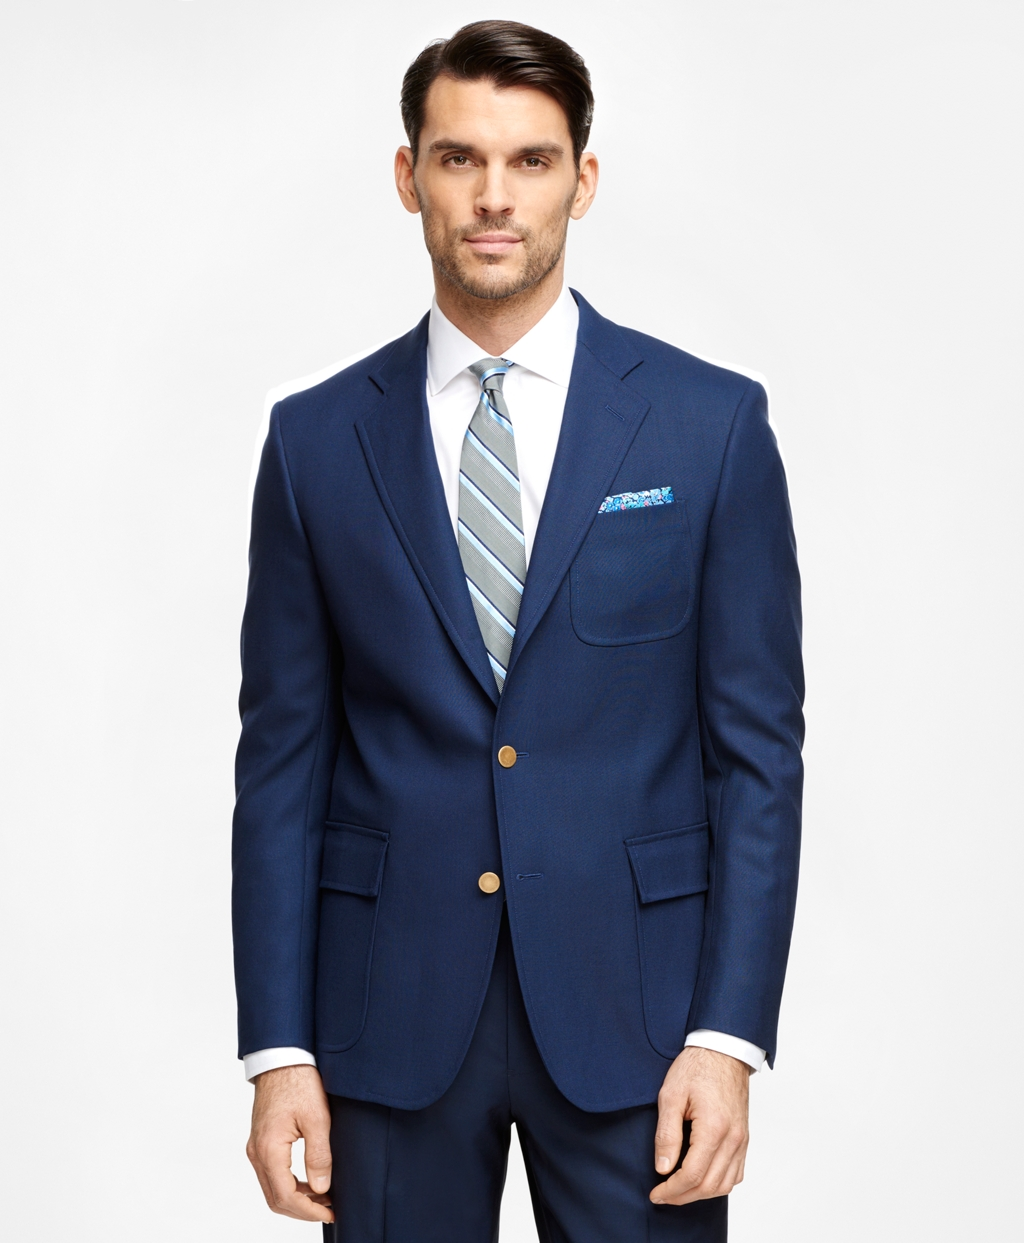 Men's Slim Fit Own Make Navy Sport Coat | Brooks Brothers